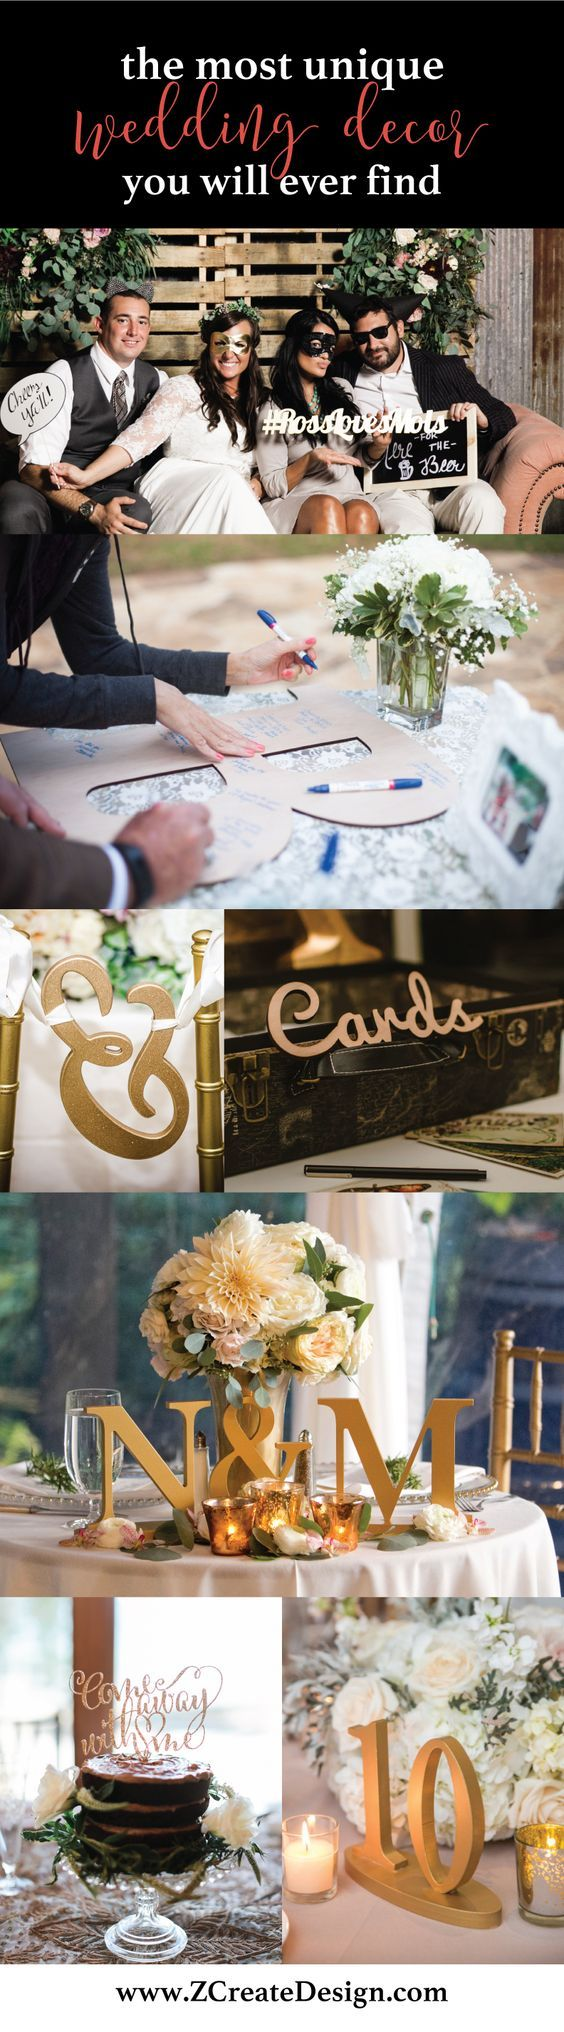 The table numbers were perfect for our blush + gold themed wedding. Customer service was also AMAZING. A few days before our wedding, I broke one of the table numbers while assembling it. They express mailed a replacement without charging us. Best people I've worked with on Etsy and I bought a ton of stuff from different Etsy vendors for my wedding.